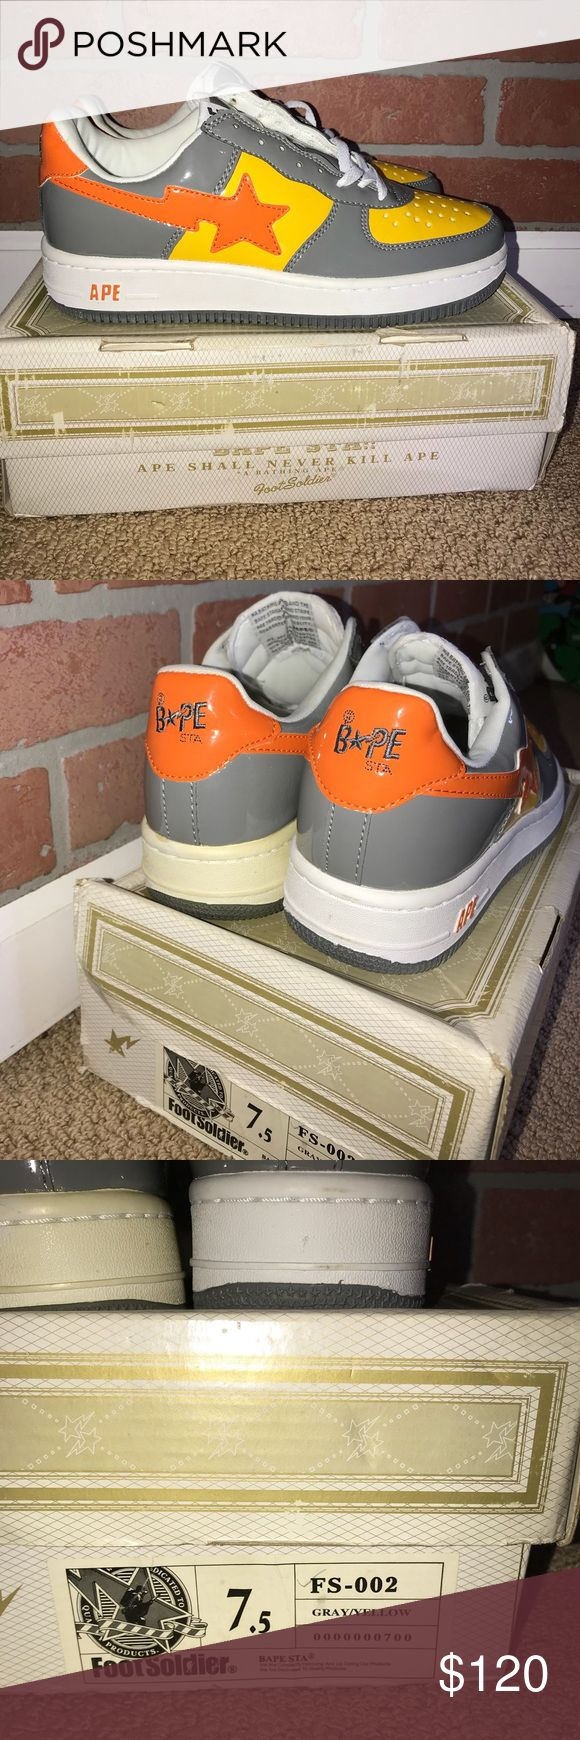 Bapesta Foot Soldiers Bapesta Foot Soldier  Comes with box. *box does have wear and is damaged   Shoes are Deadstock (Brand new Never tried on)   Size 7.5 Bape Shoes Sneakers